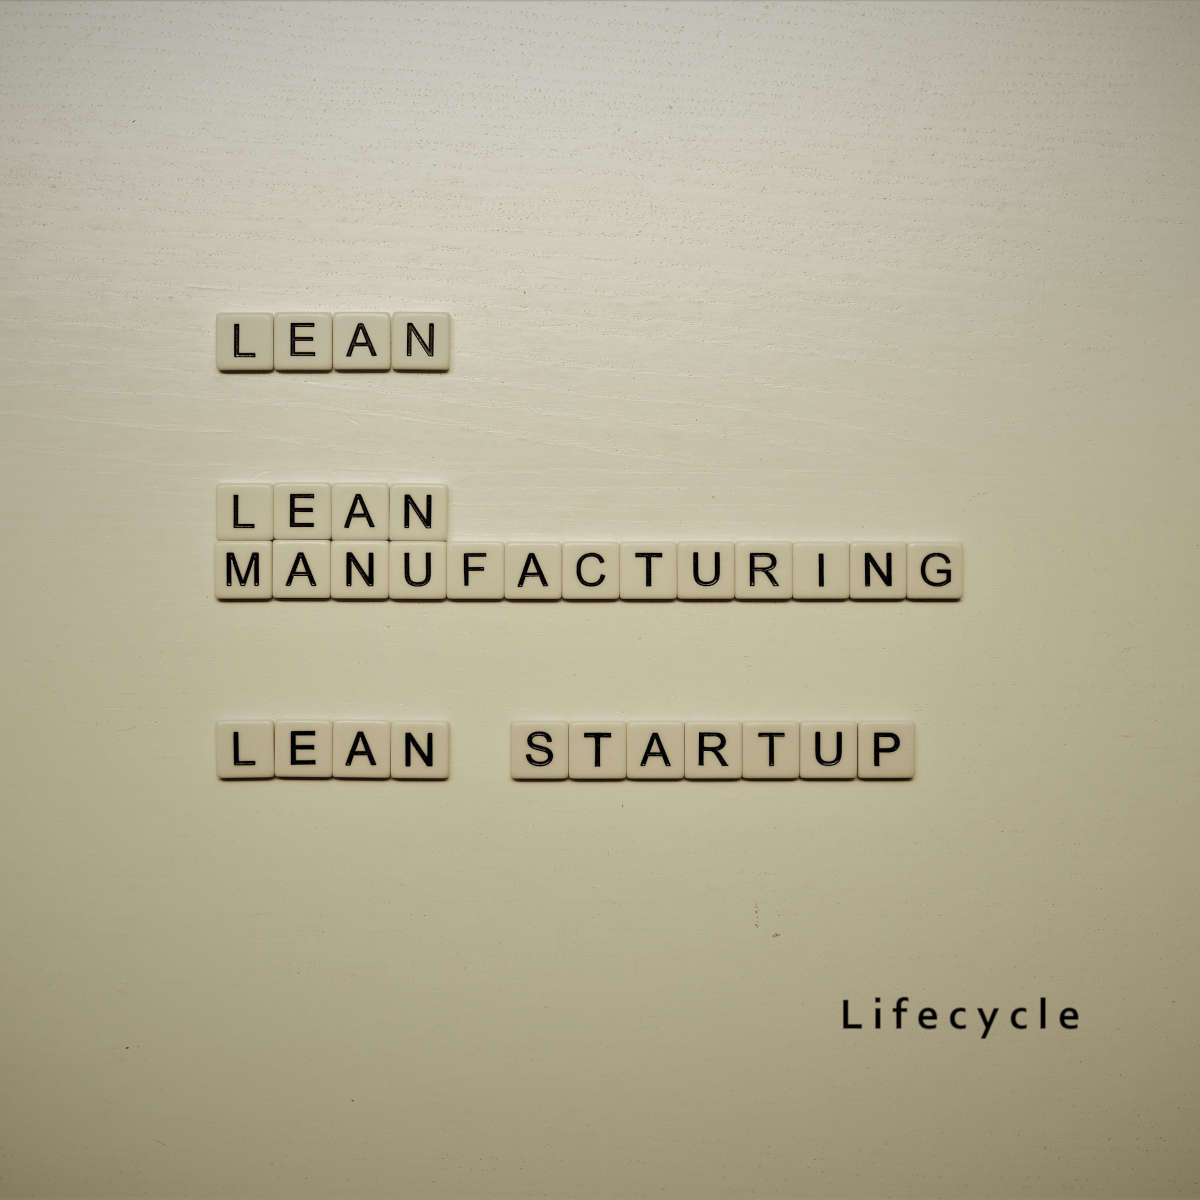 Lean, Lean Manufacturing, Lean Startup, Clarified, Lifecycle